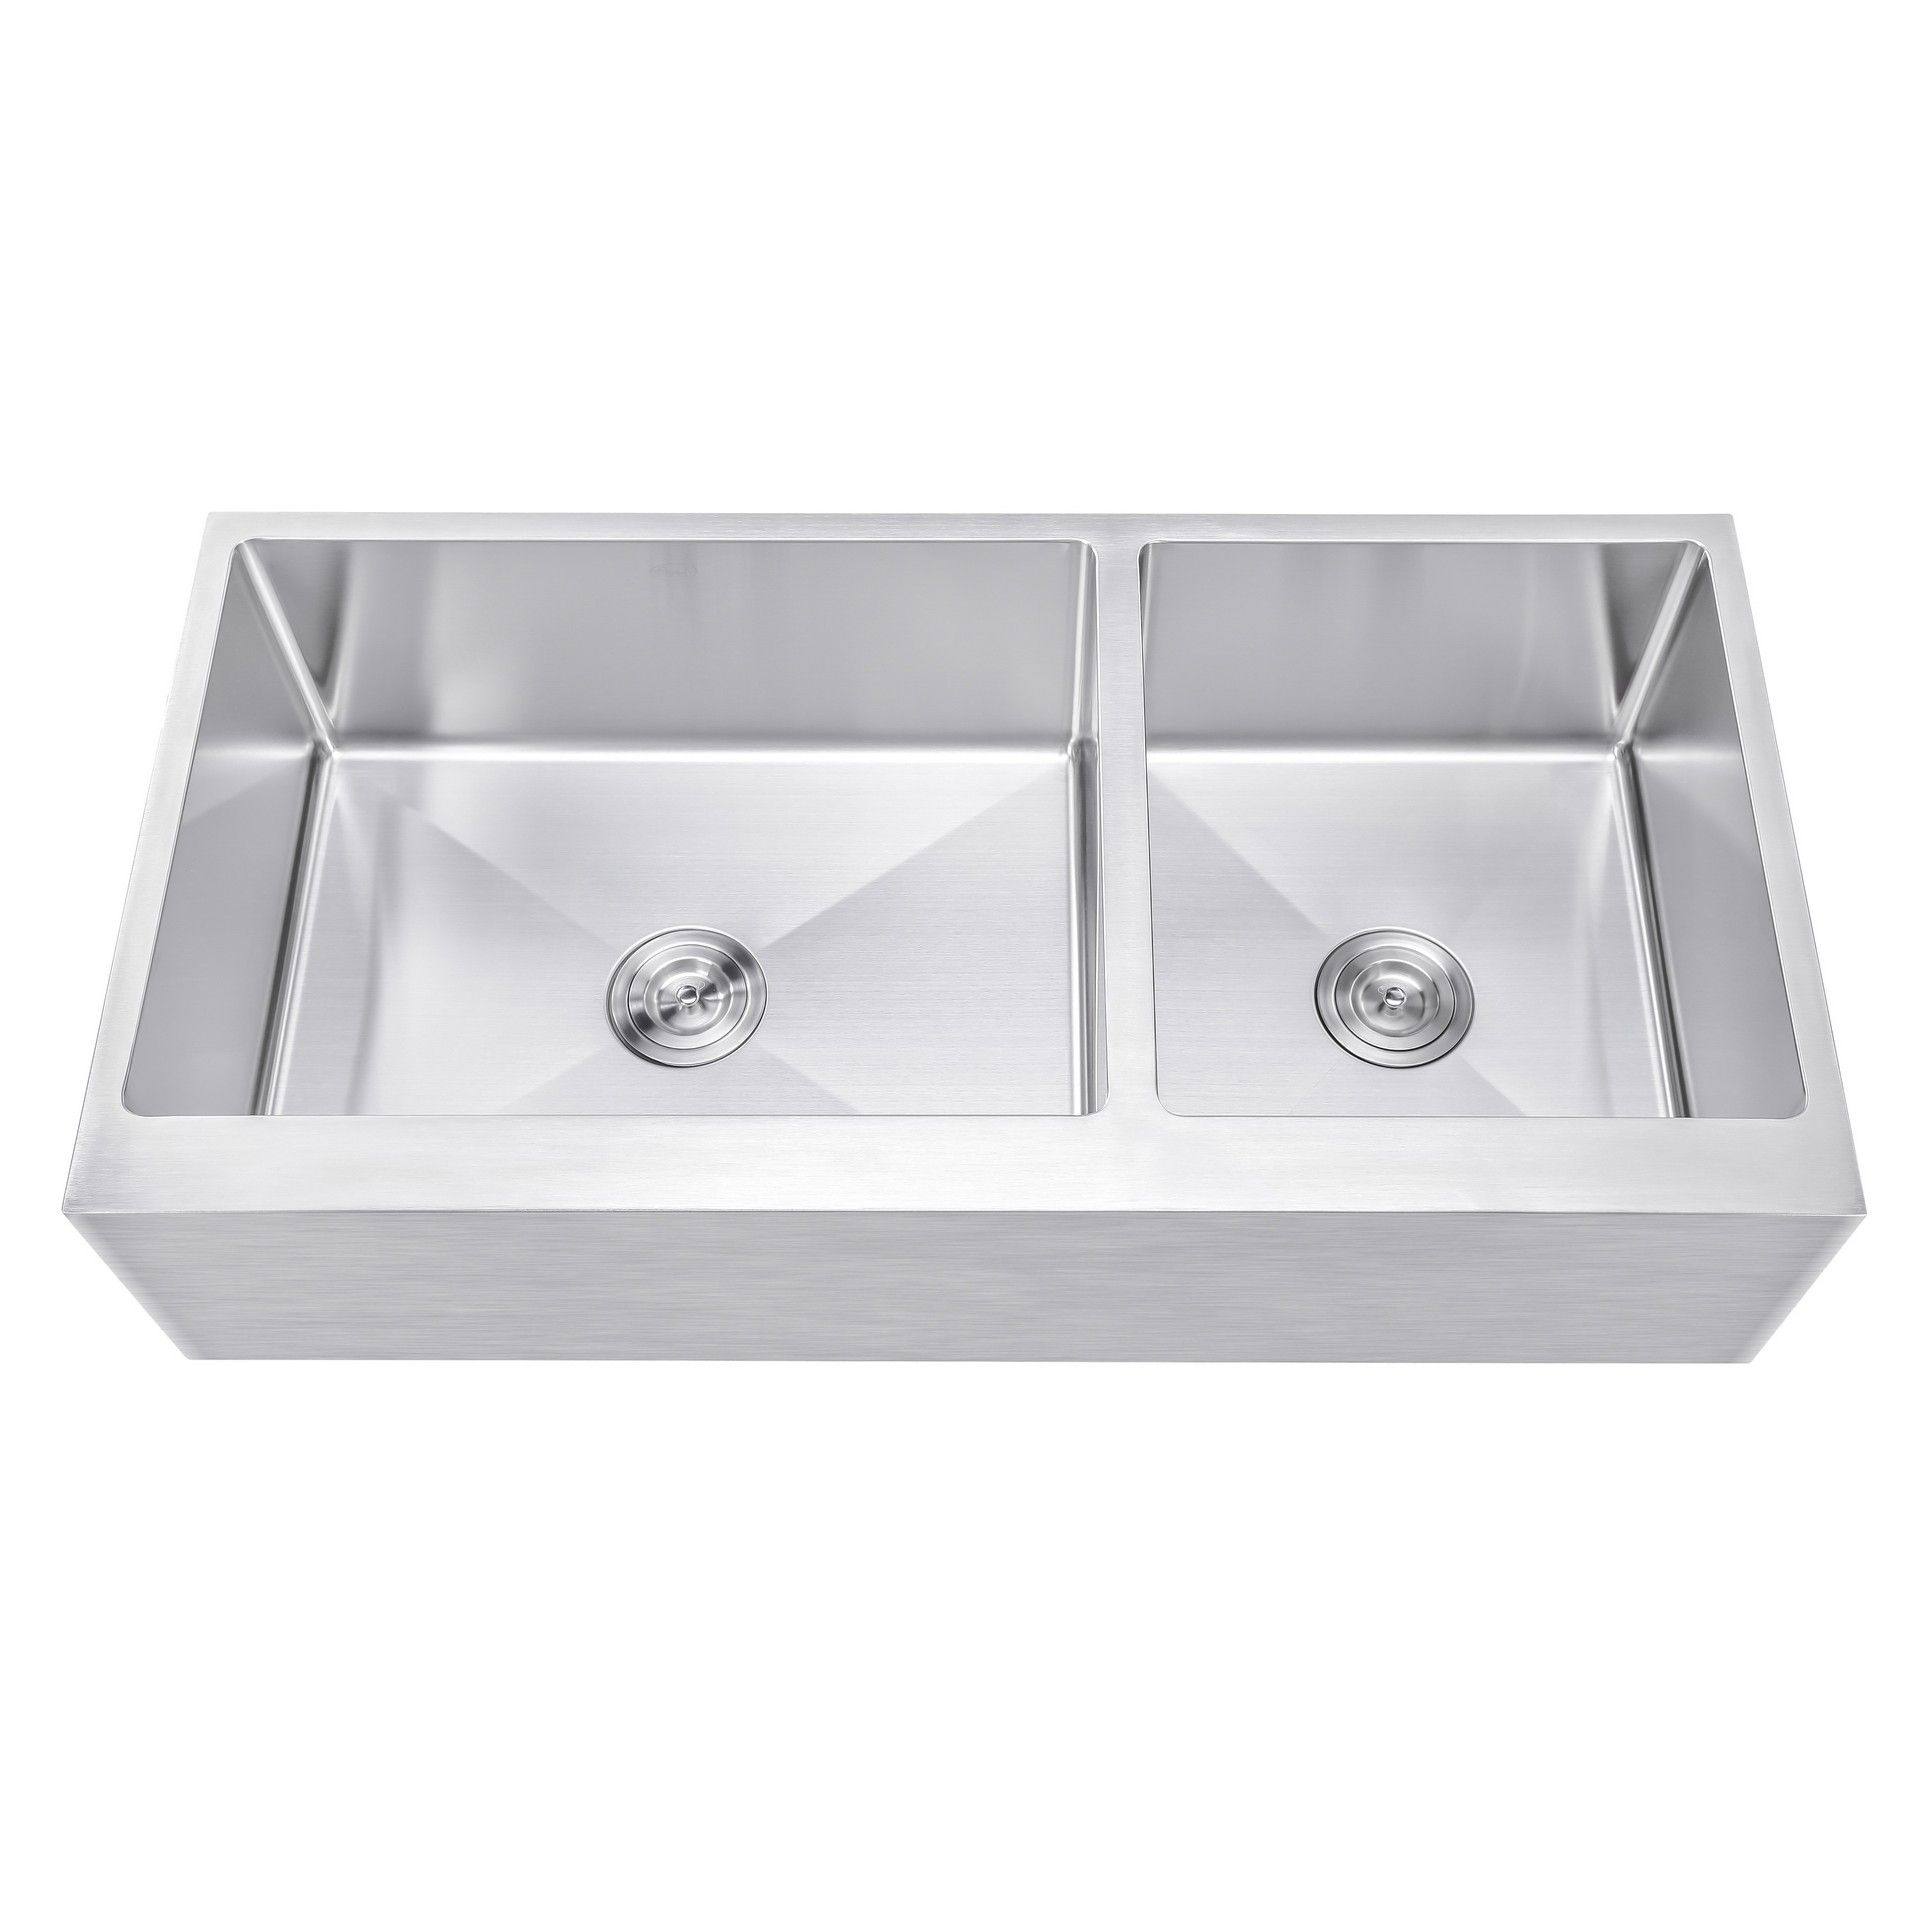 Ariel 42 Inch 60 40 Offset Double Bowl Stainless Steel Farmhouse Sink Flat Apron Front 15mm Radius Coved Corners Stainless Steel Farmhouse Sink Apron Front Stainless Steel Kitchen Sink Sink